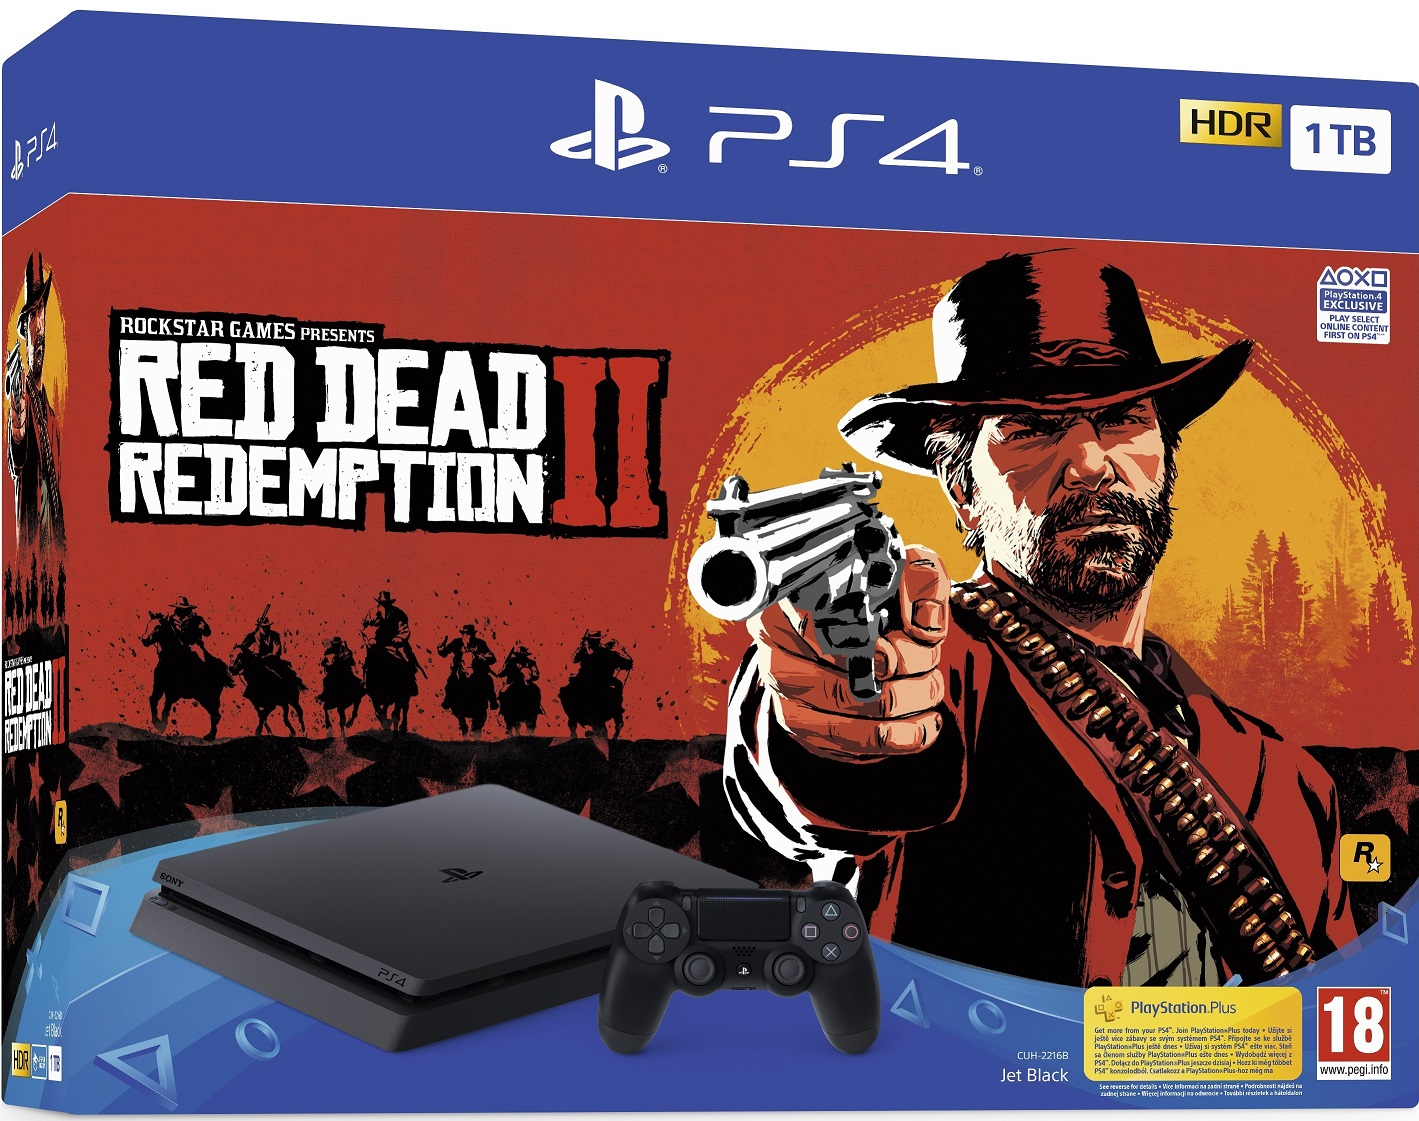 Sony PlayStation 4 Slim 1TB (PS4 Slim) + Red Dead Redemption 2